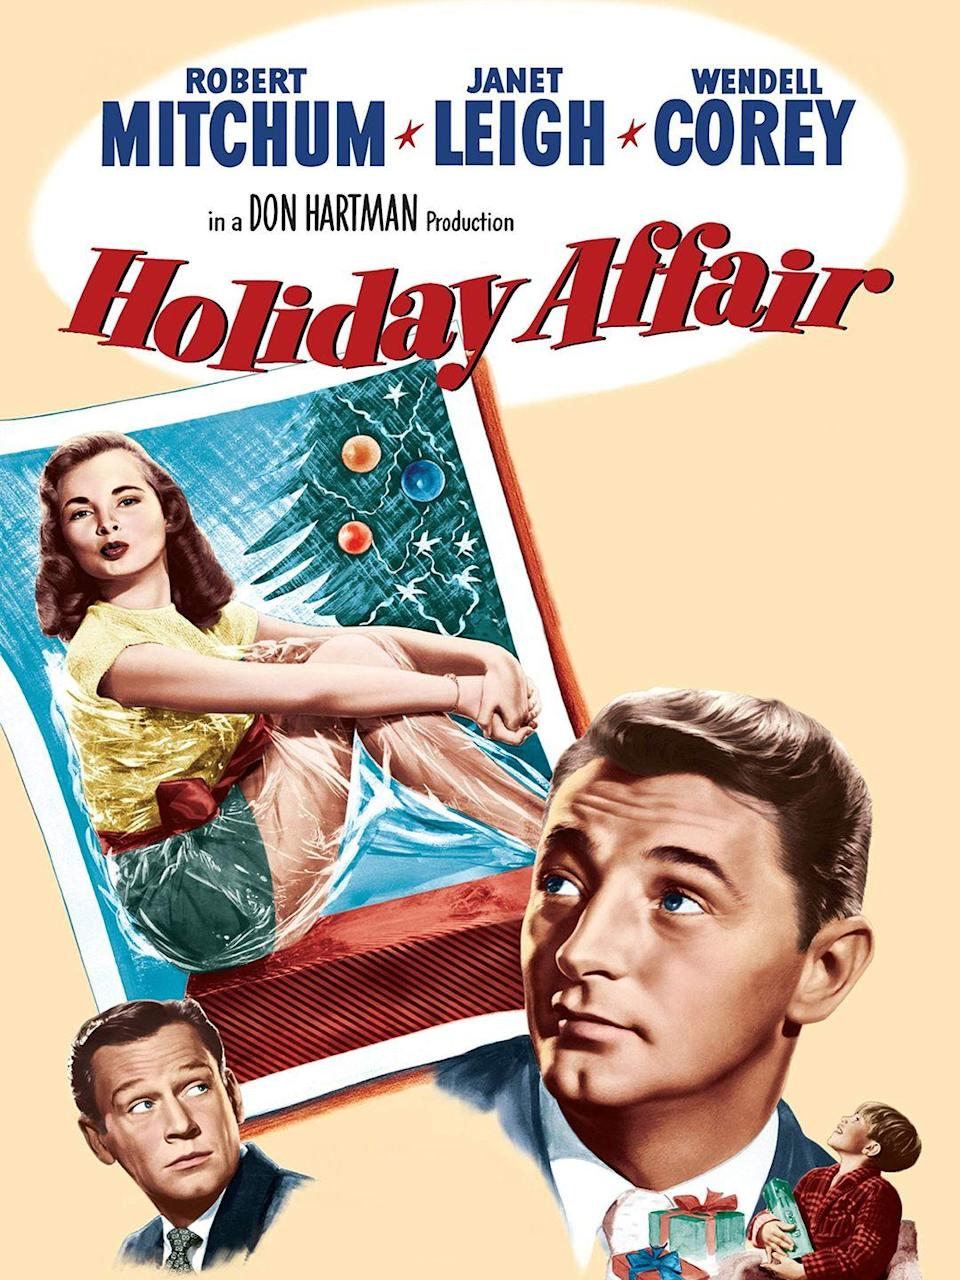 """<p>Set in and around a New York department store during the holiday season, this romantic comedy was a box office failure when it came out in 1949. Since then, it's become a Christmas movie classic thanks to repeated airings on TCM over the years.</p><p><a class=""""link rapid-noclick-resp"""" href=""""https://www.amazon.com/Holiday-Affair-Robert-Mitchum/dp/B0042R4OOK/?tag=syn-yahoo-20&ascsubtag=%5Bartid%7C10055.g.1315%5Bsrc%7Cyahoo-us"""" rel=""""nofollow noopener"""" target=""""_blank"""" data-ylk=""""slk:WATCH NOW"""">WATCH NOW</a></p>"""